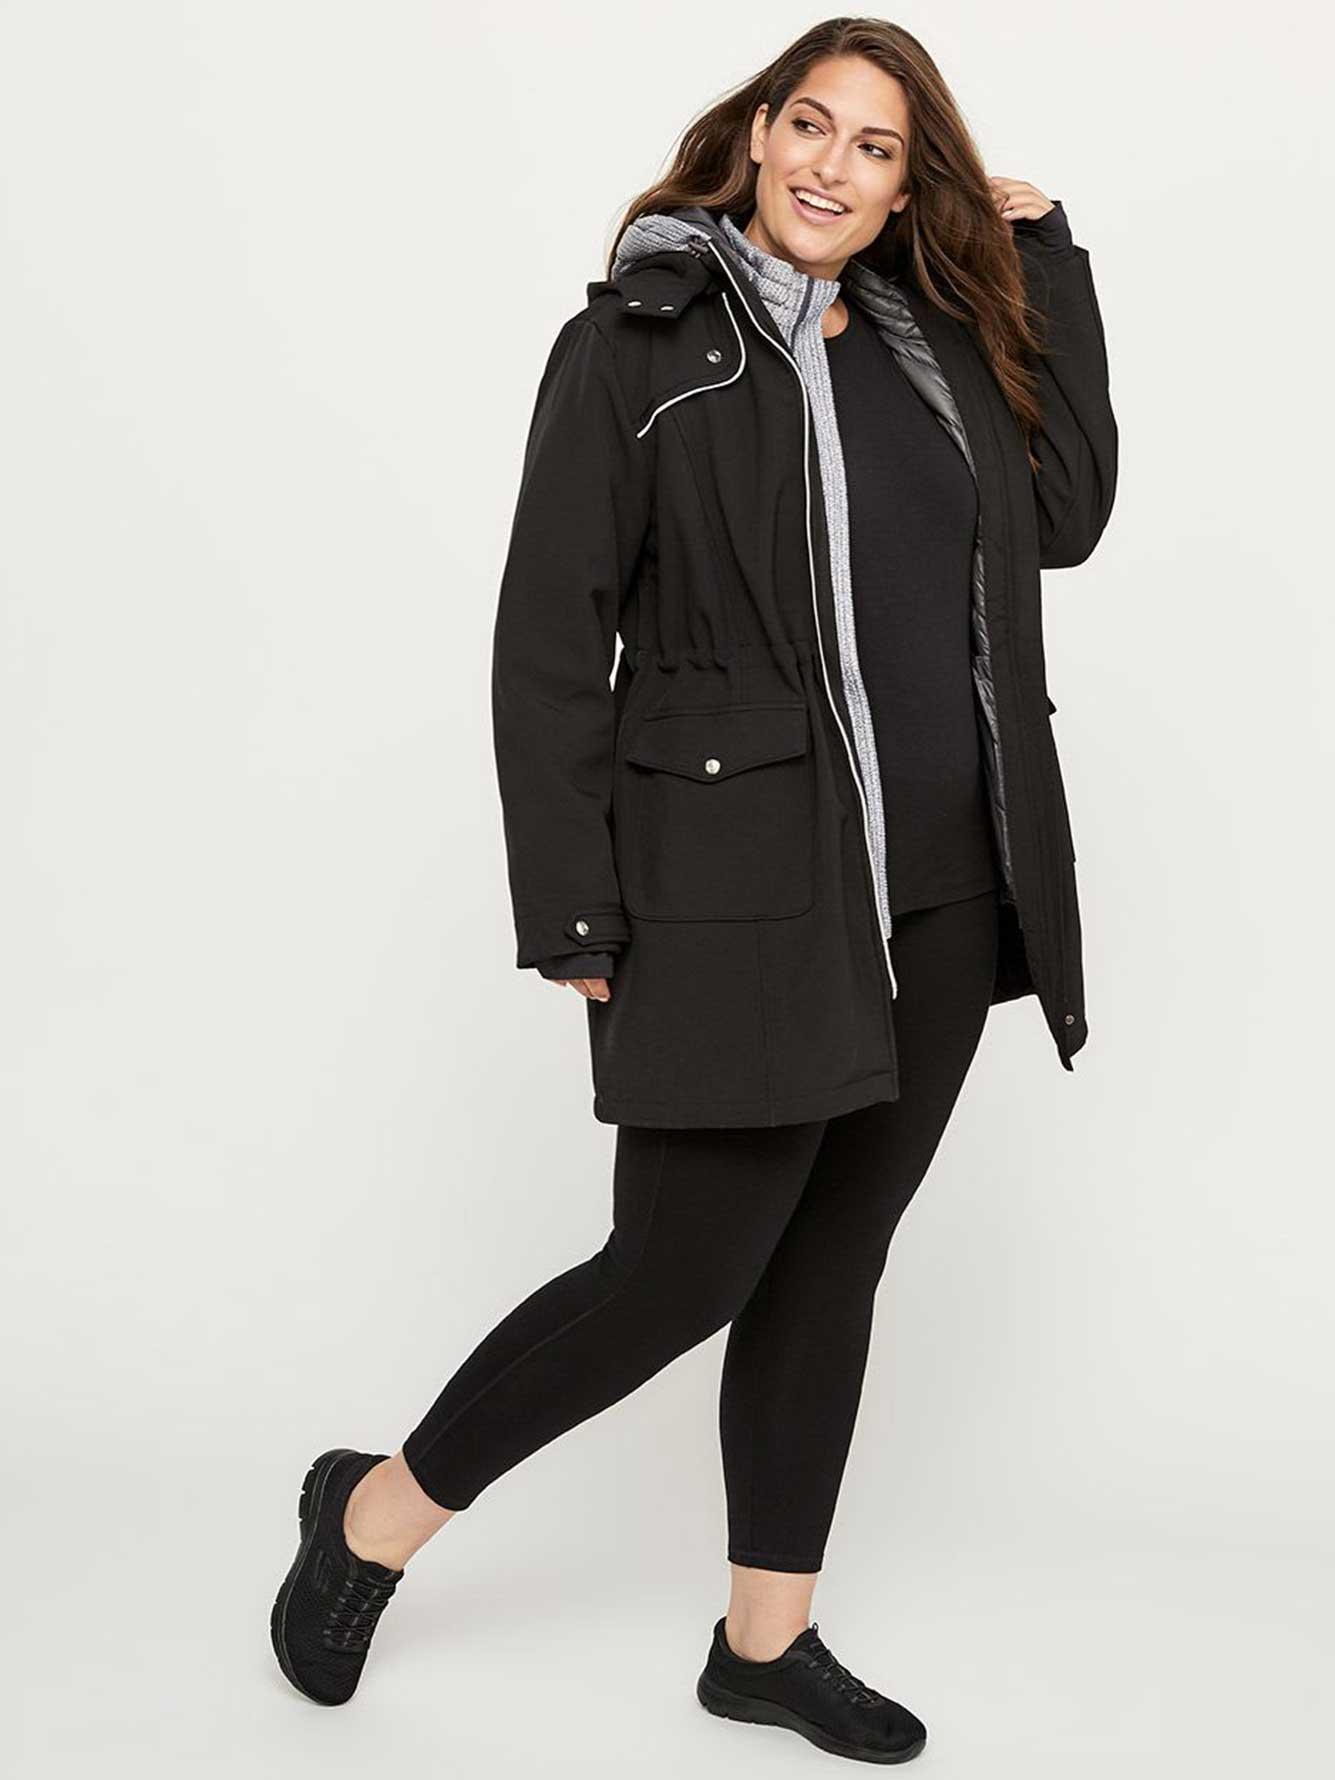 Packable Plus Size Hooded Jacket - ActiveZone